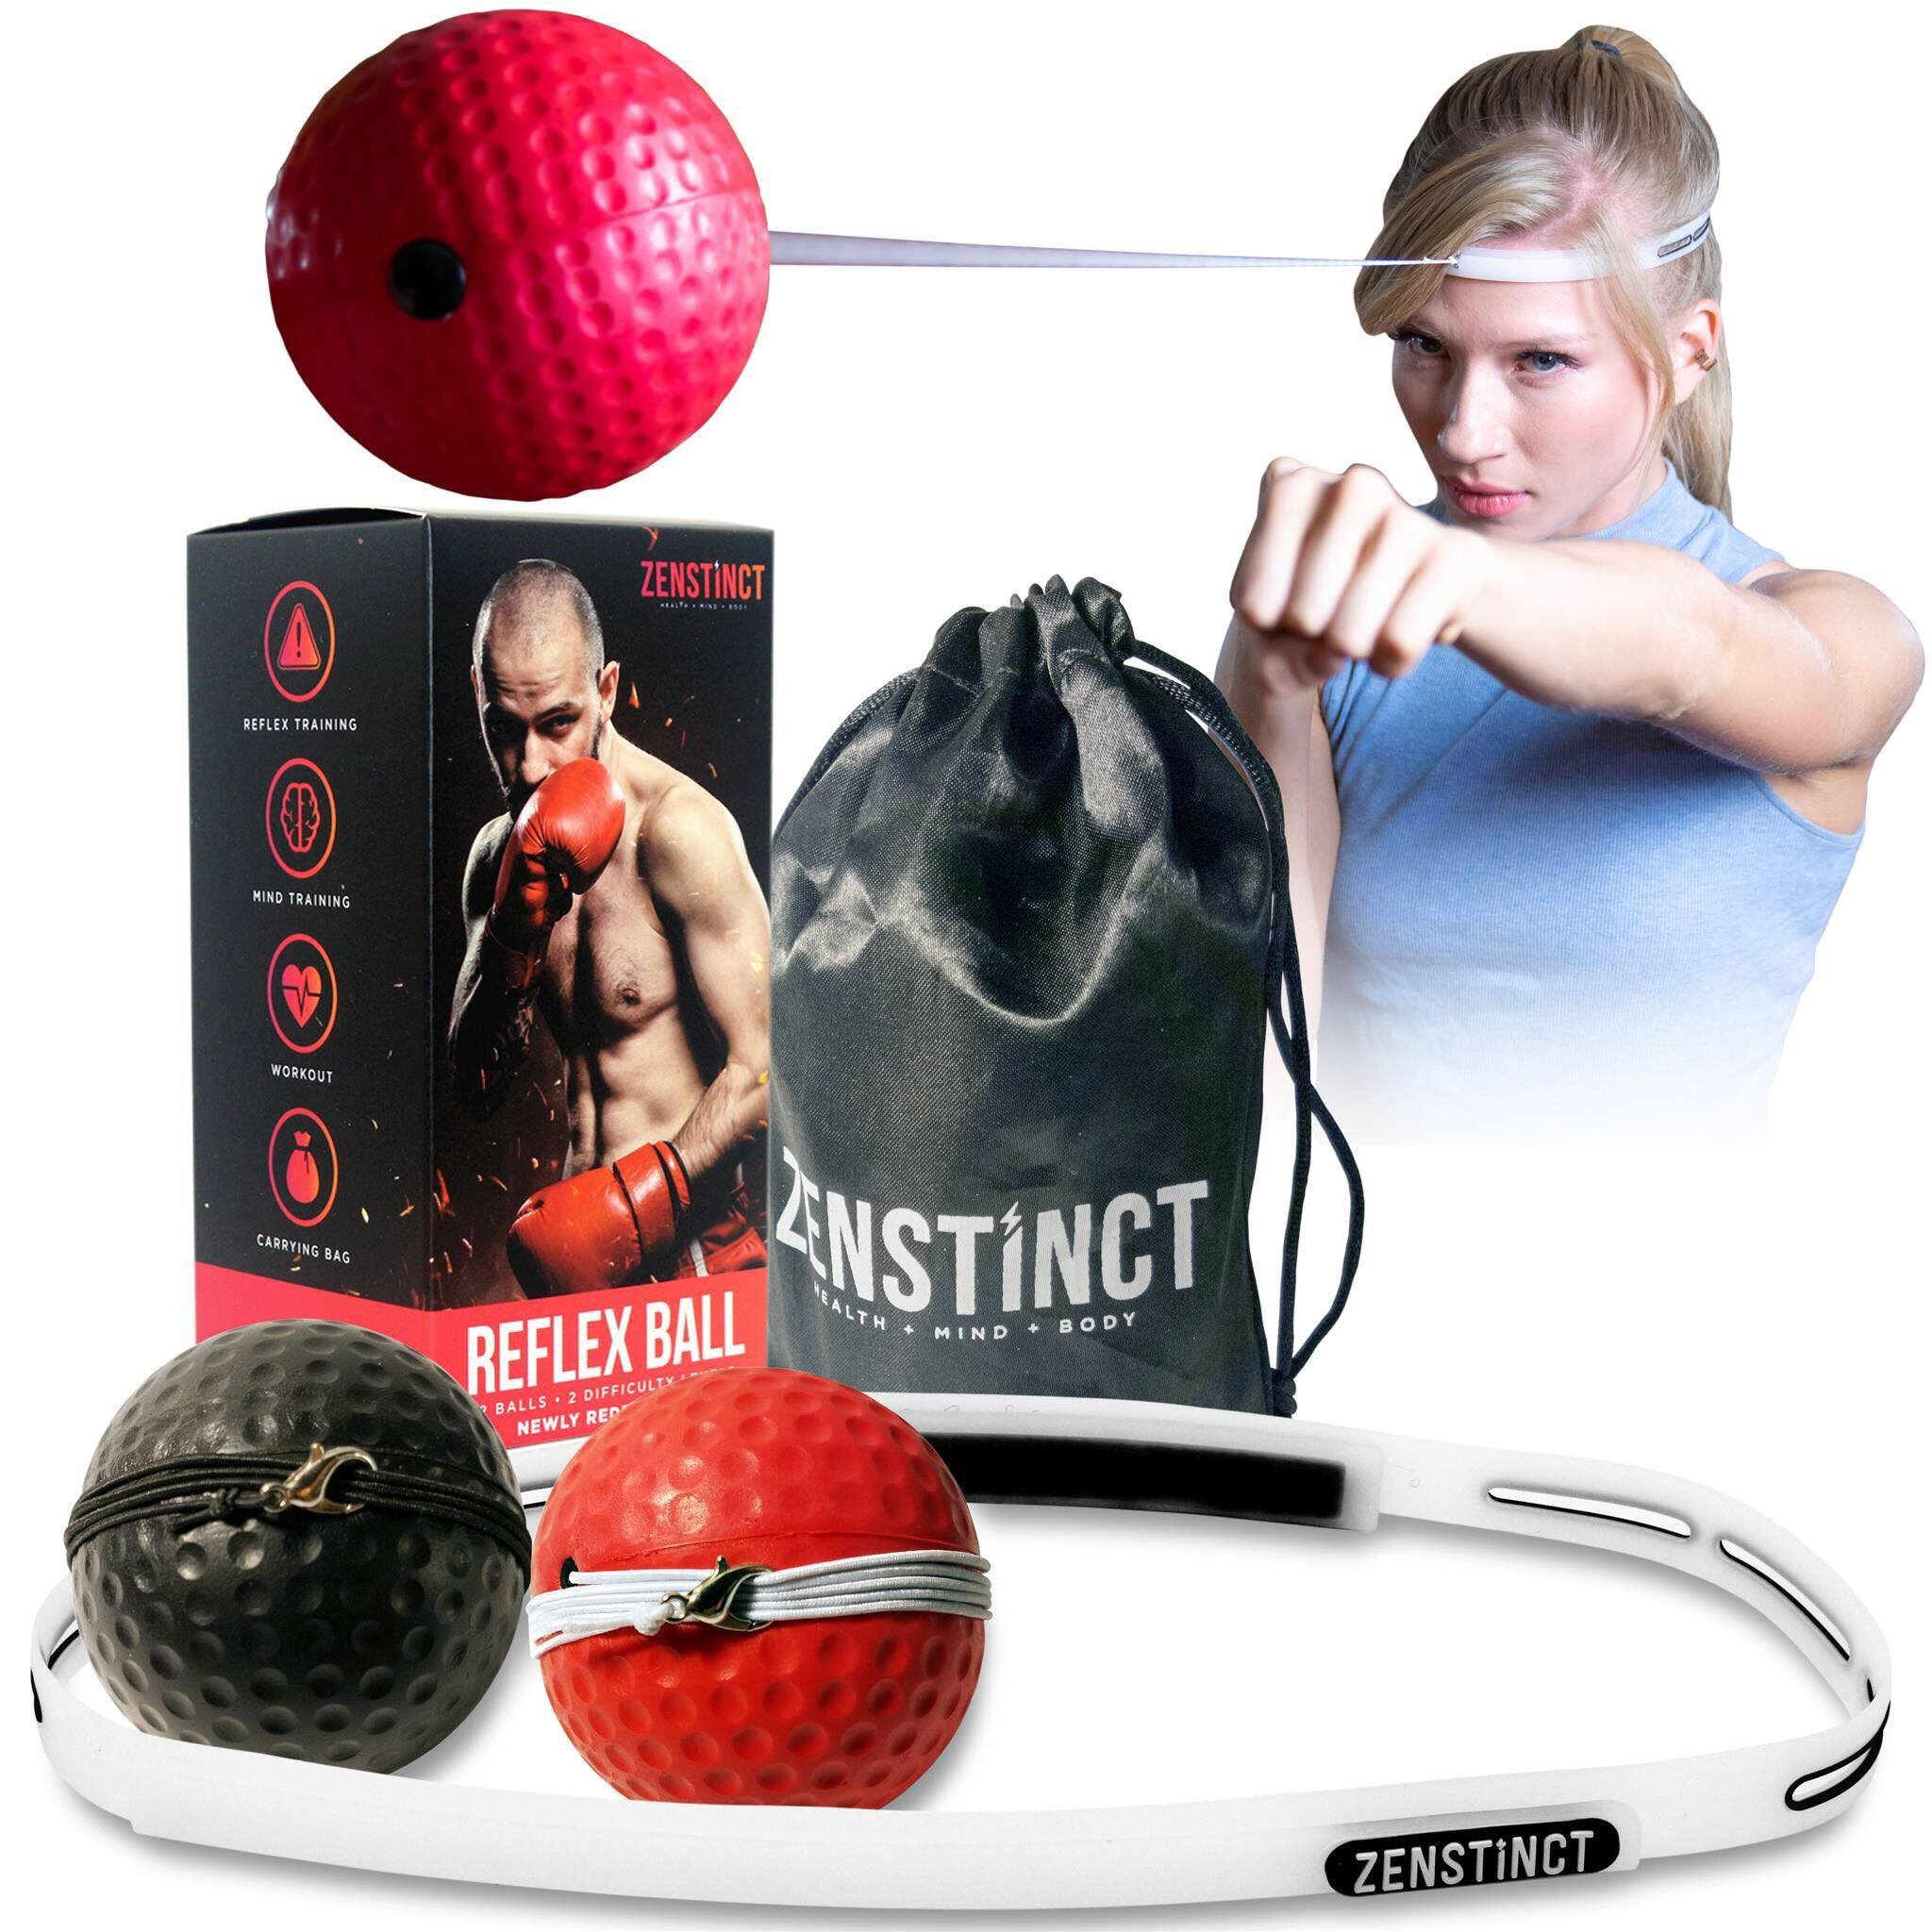 Zenstinct Boxing Reflex Ball Kit – Training Fight Ball with 2 Reaction Ball Levels (Red and Black) – Headband Speed Ball for MMA and Punching Ball for Stress - Safe Boxing Equipment for Kids 6+